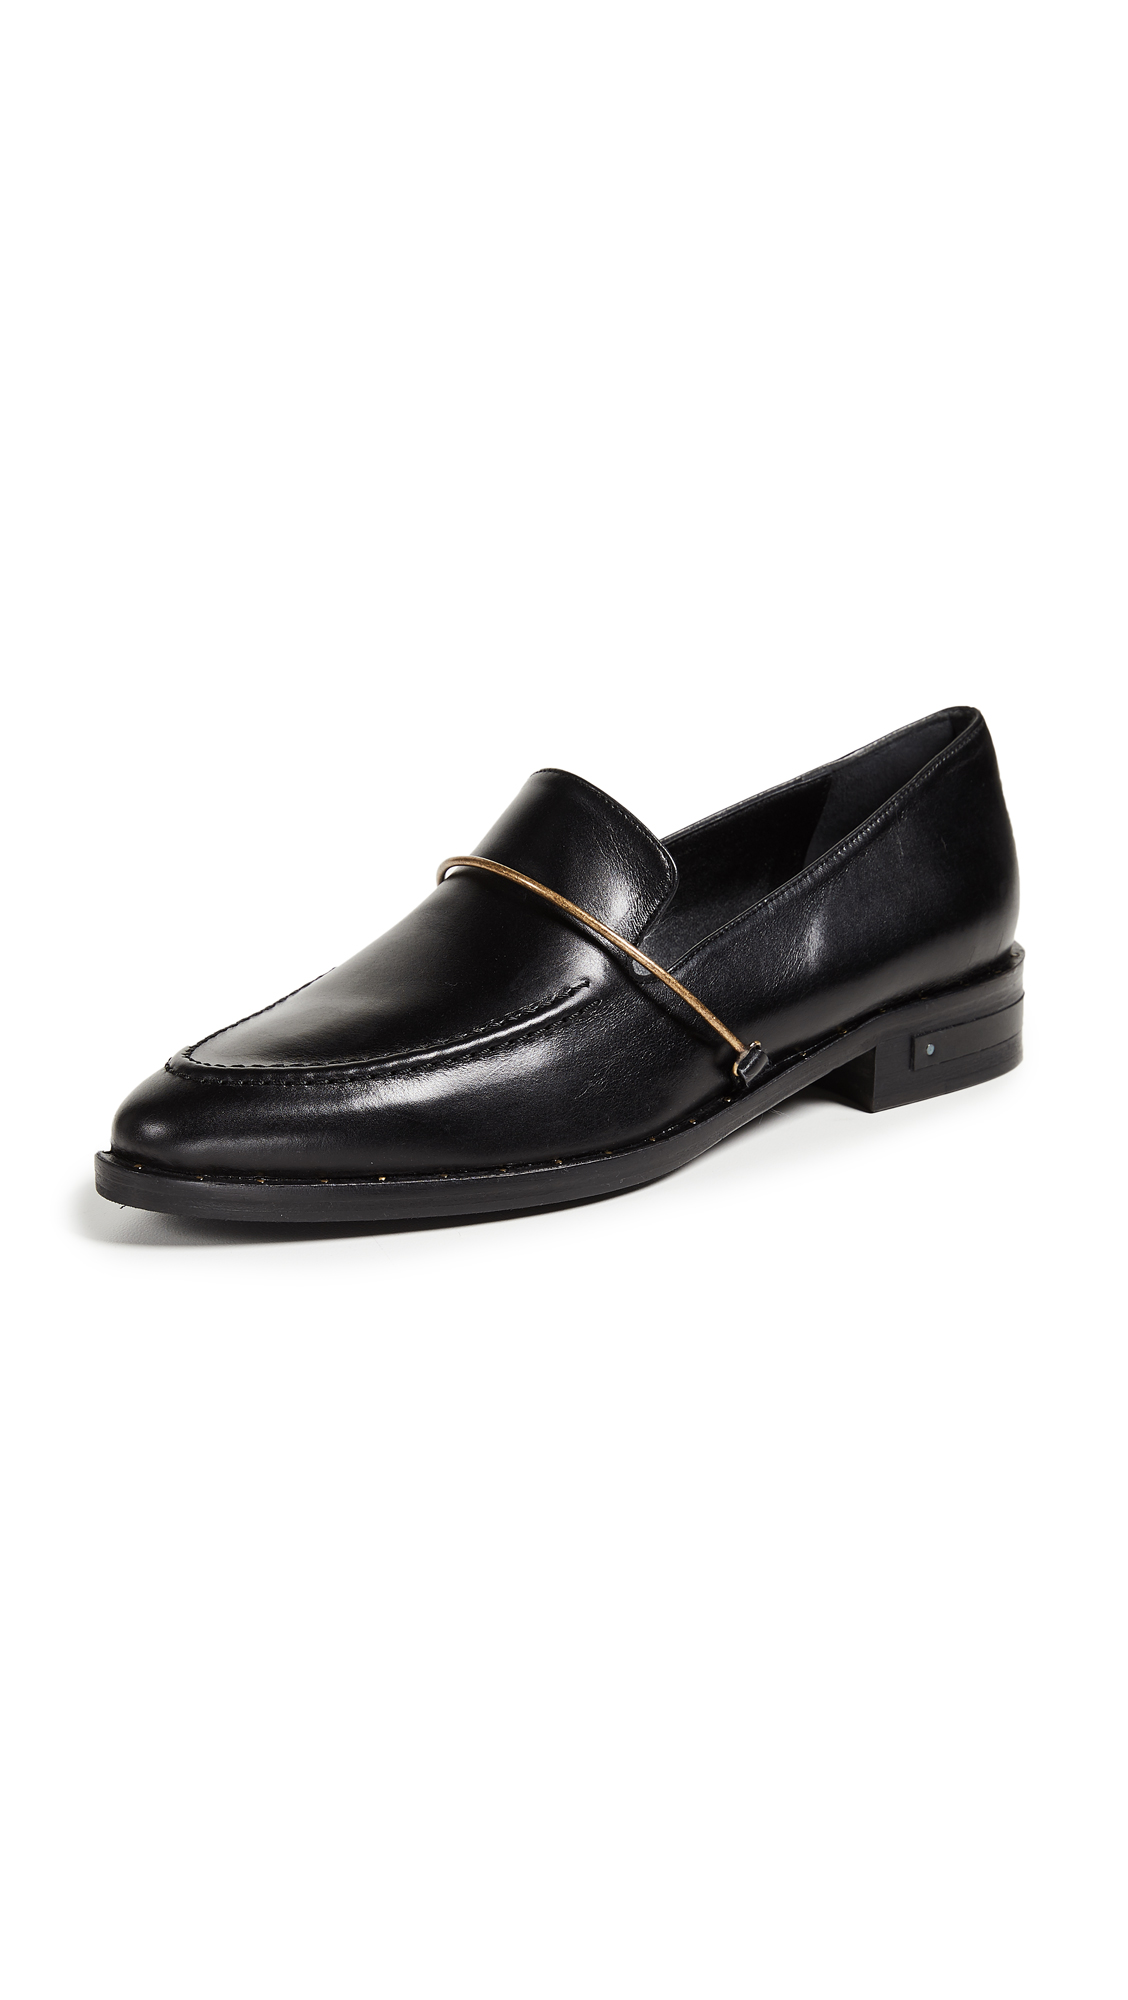 Buy Freda Salvador The Light Loafers online, shop Freda Salvador